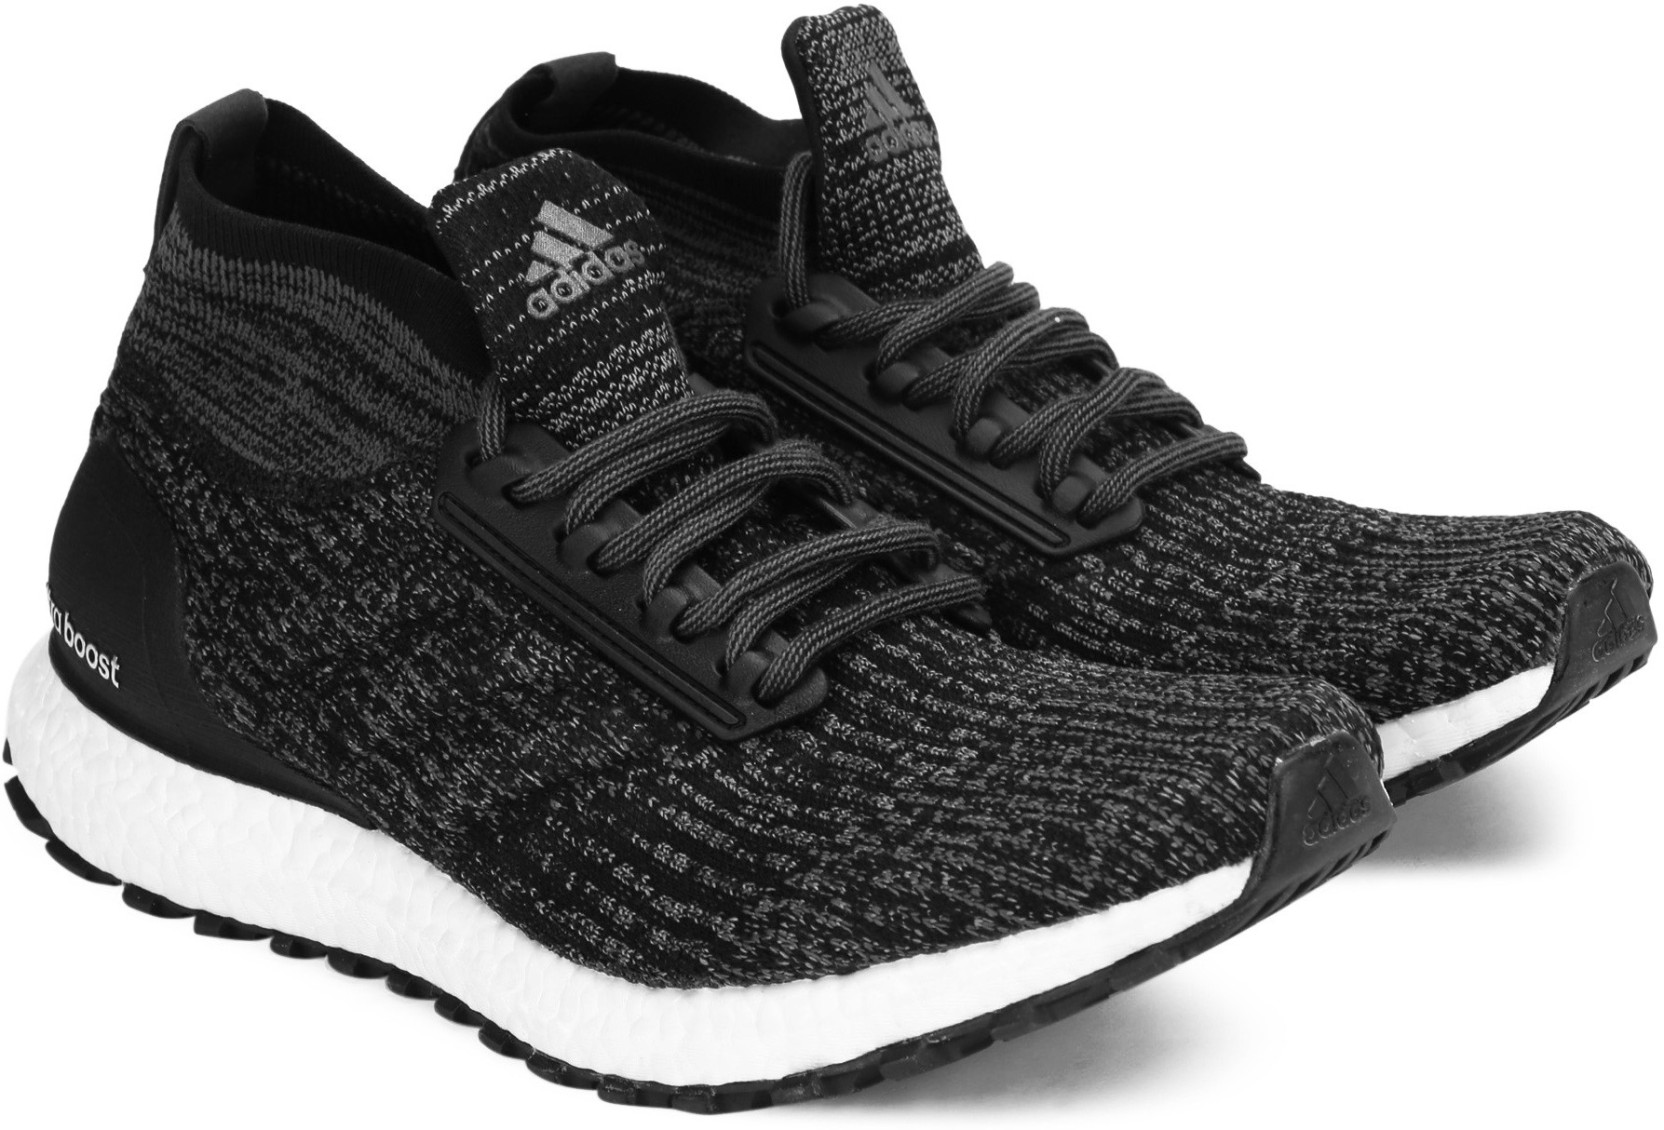 7d0adbc727a29 ADIDAS ULTRABOOST ALL TERRAIN Running Shoes For Men - Buy CBLACK ...